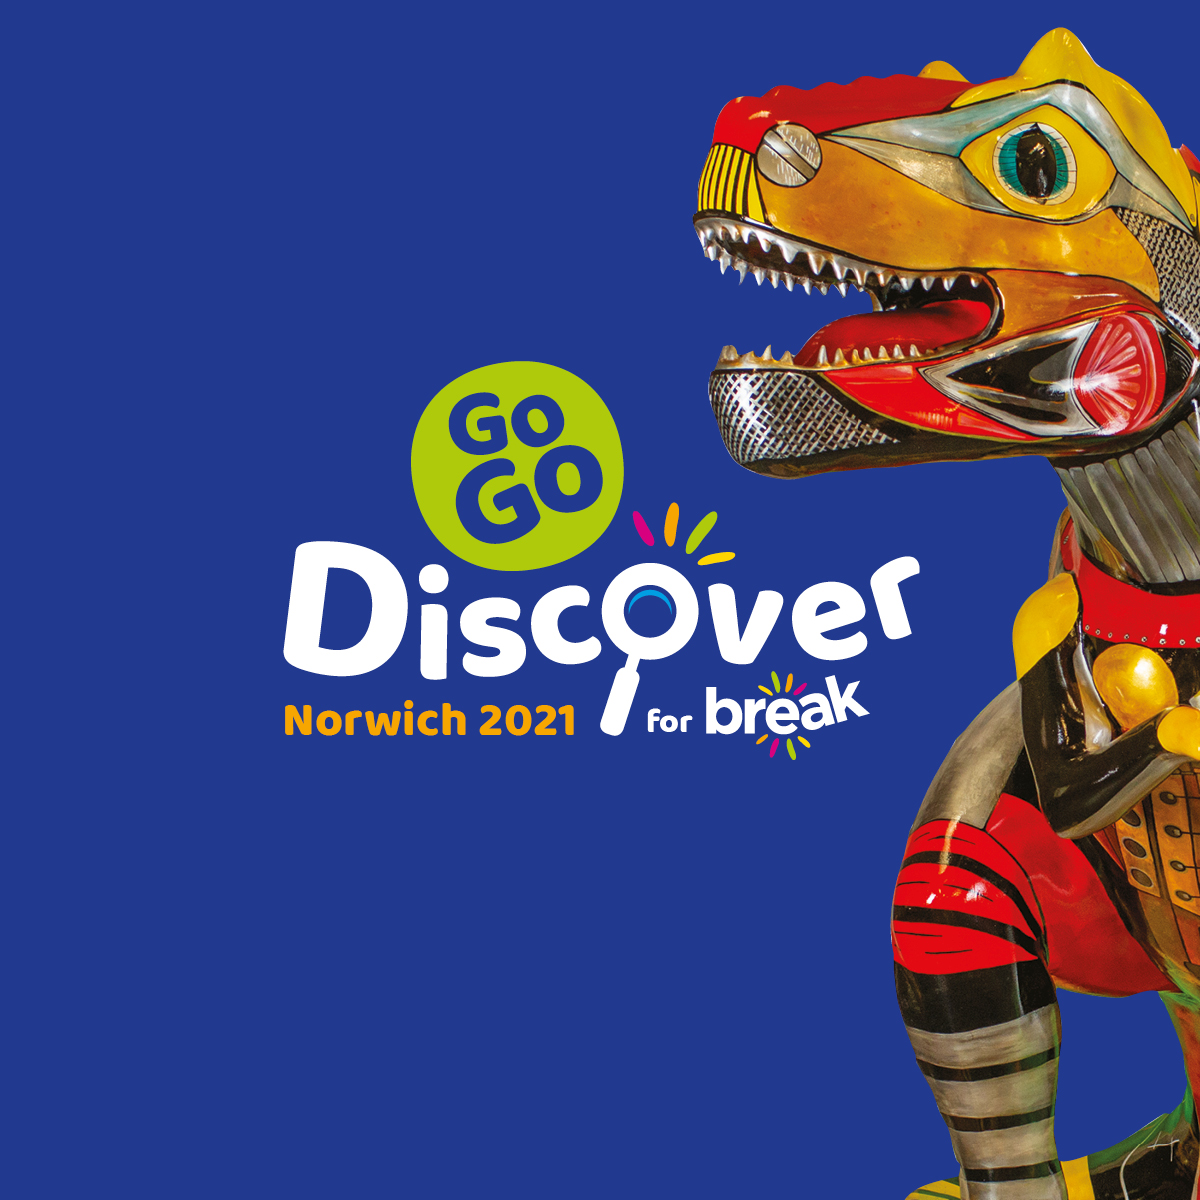 GoGoDiscover FOUR's T.rexciting Work